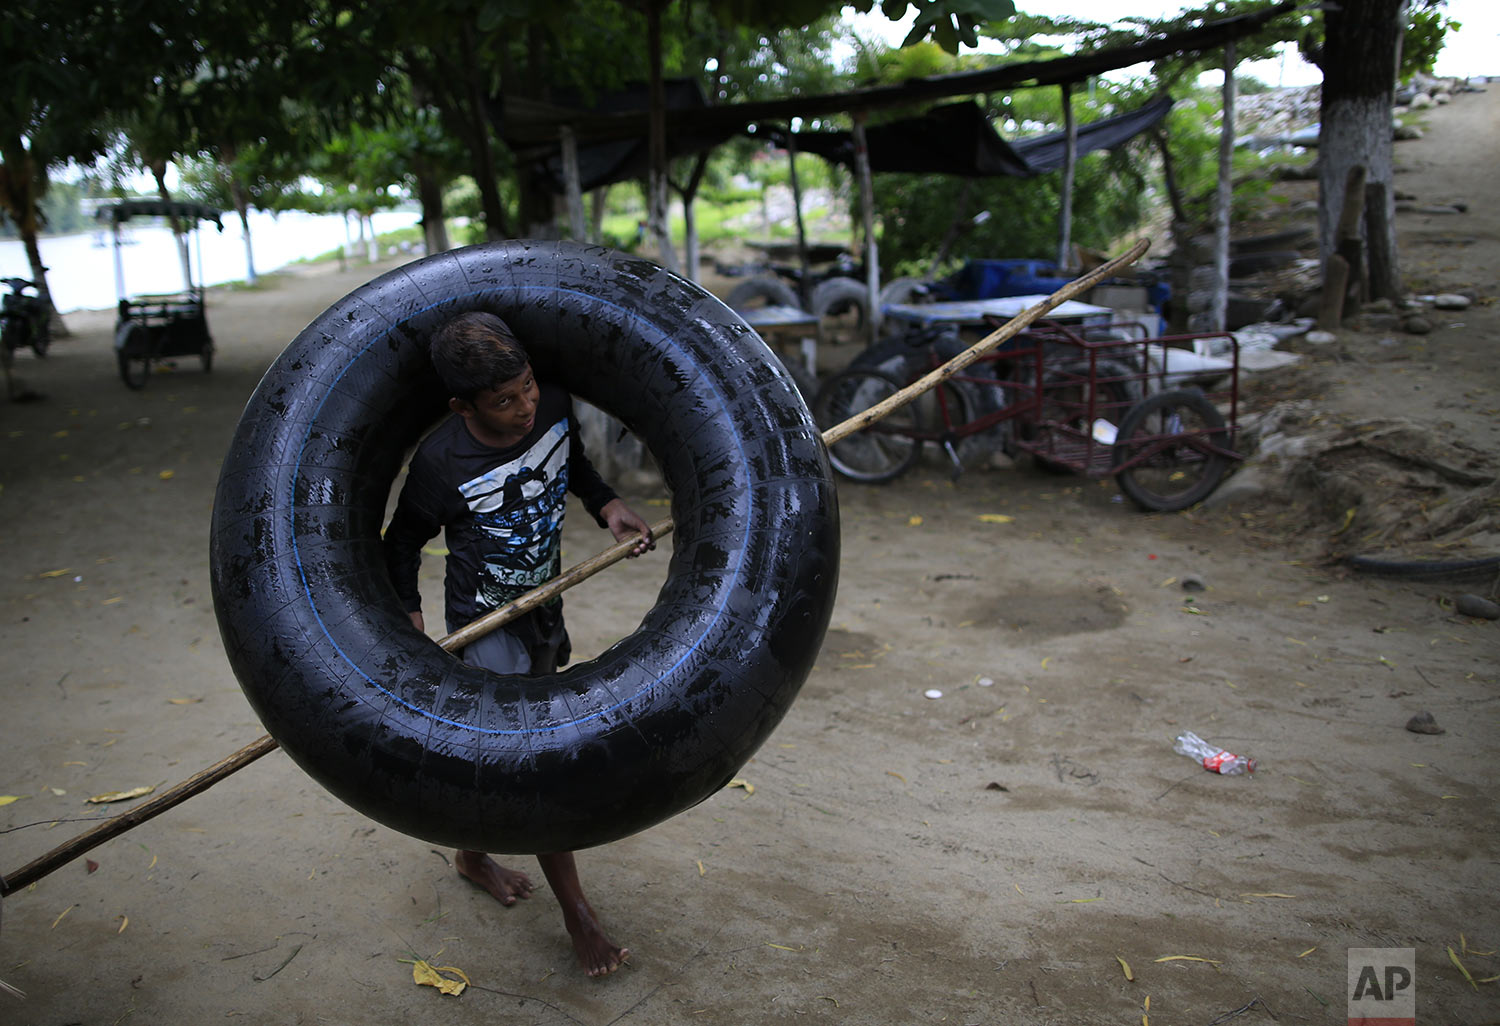 A Mexican boy returns his inner tube and pole to a small business after crossing back across the Suchiate River from Guatemala, in Ciudad Hidalgo, Mexico, June 12, 2019. Mexican officials said Tuesday they were beginning deployment of the country's new National Guard for immigration enforcement, but on Wednesday, commuters, merchandise, and occasional groups of migrants continued to flow freely across the Suchiate on Mexico's porous southern border. (AP Photo/Rebecca Blackwell)